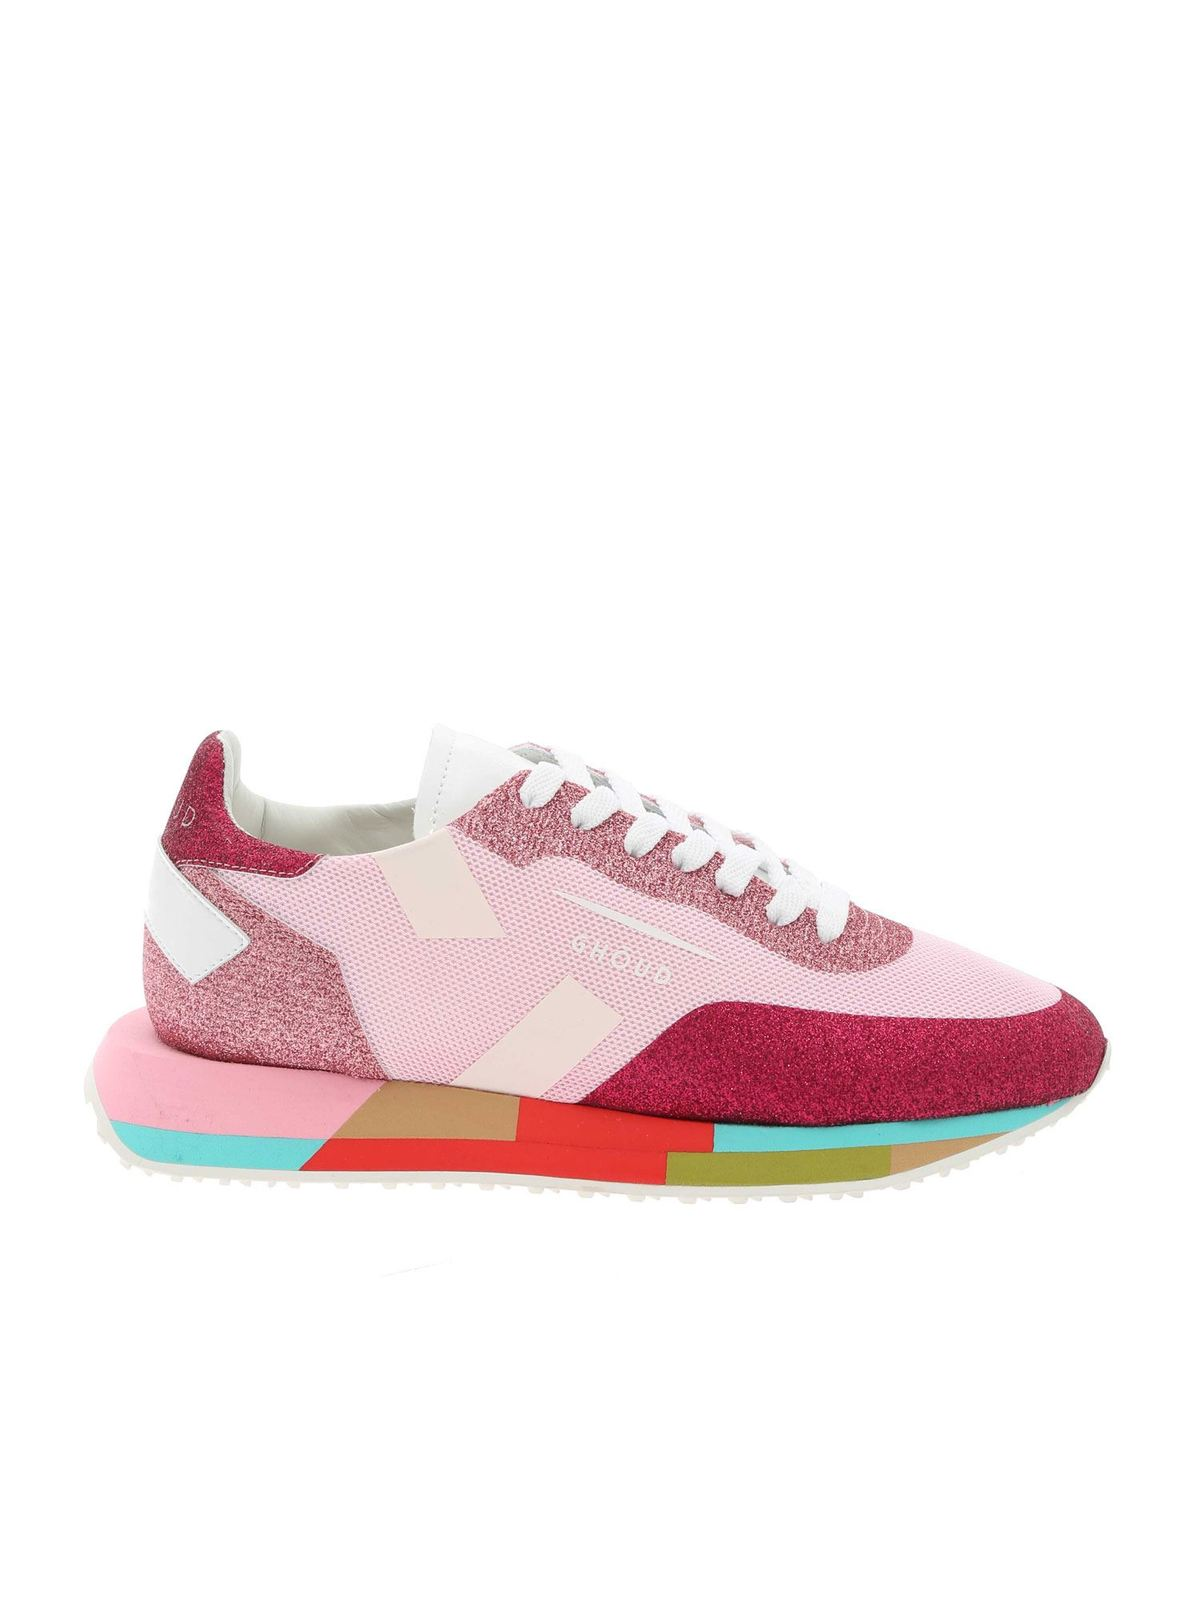 Ghoud Venice STARM SNEAKERS IN PINK AND FUCHSIA